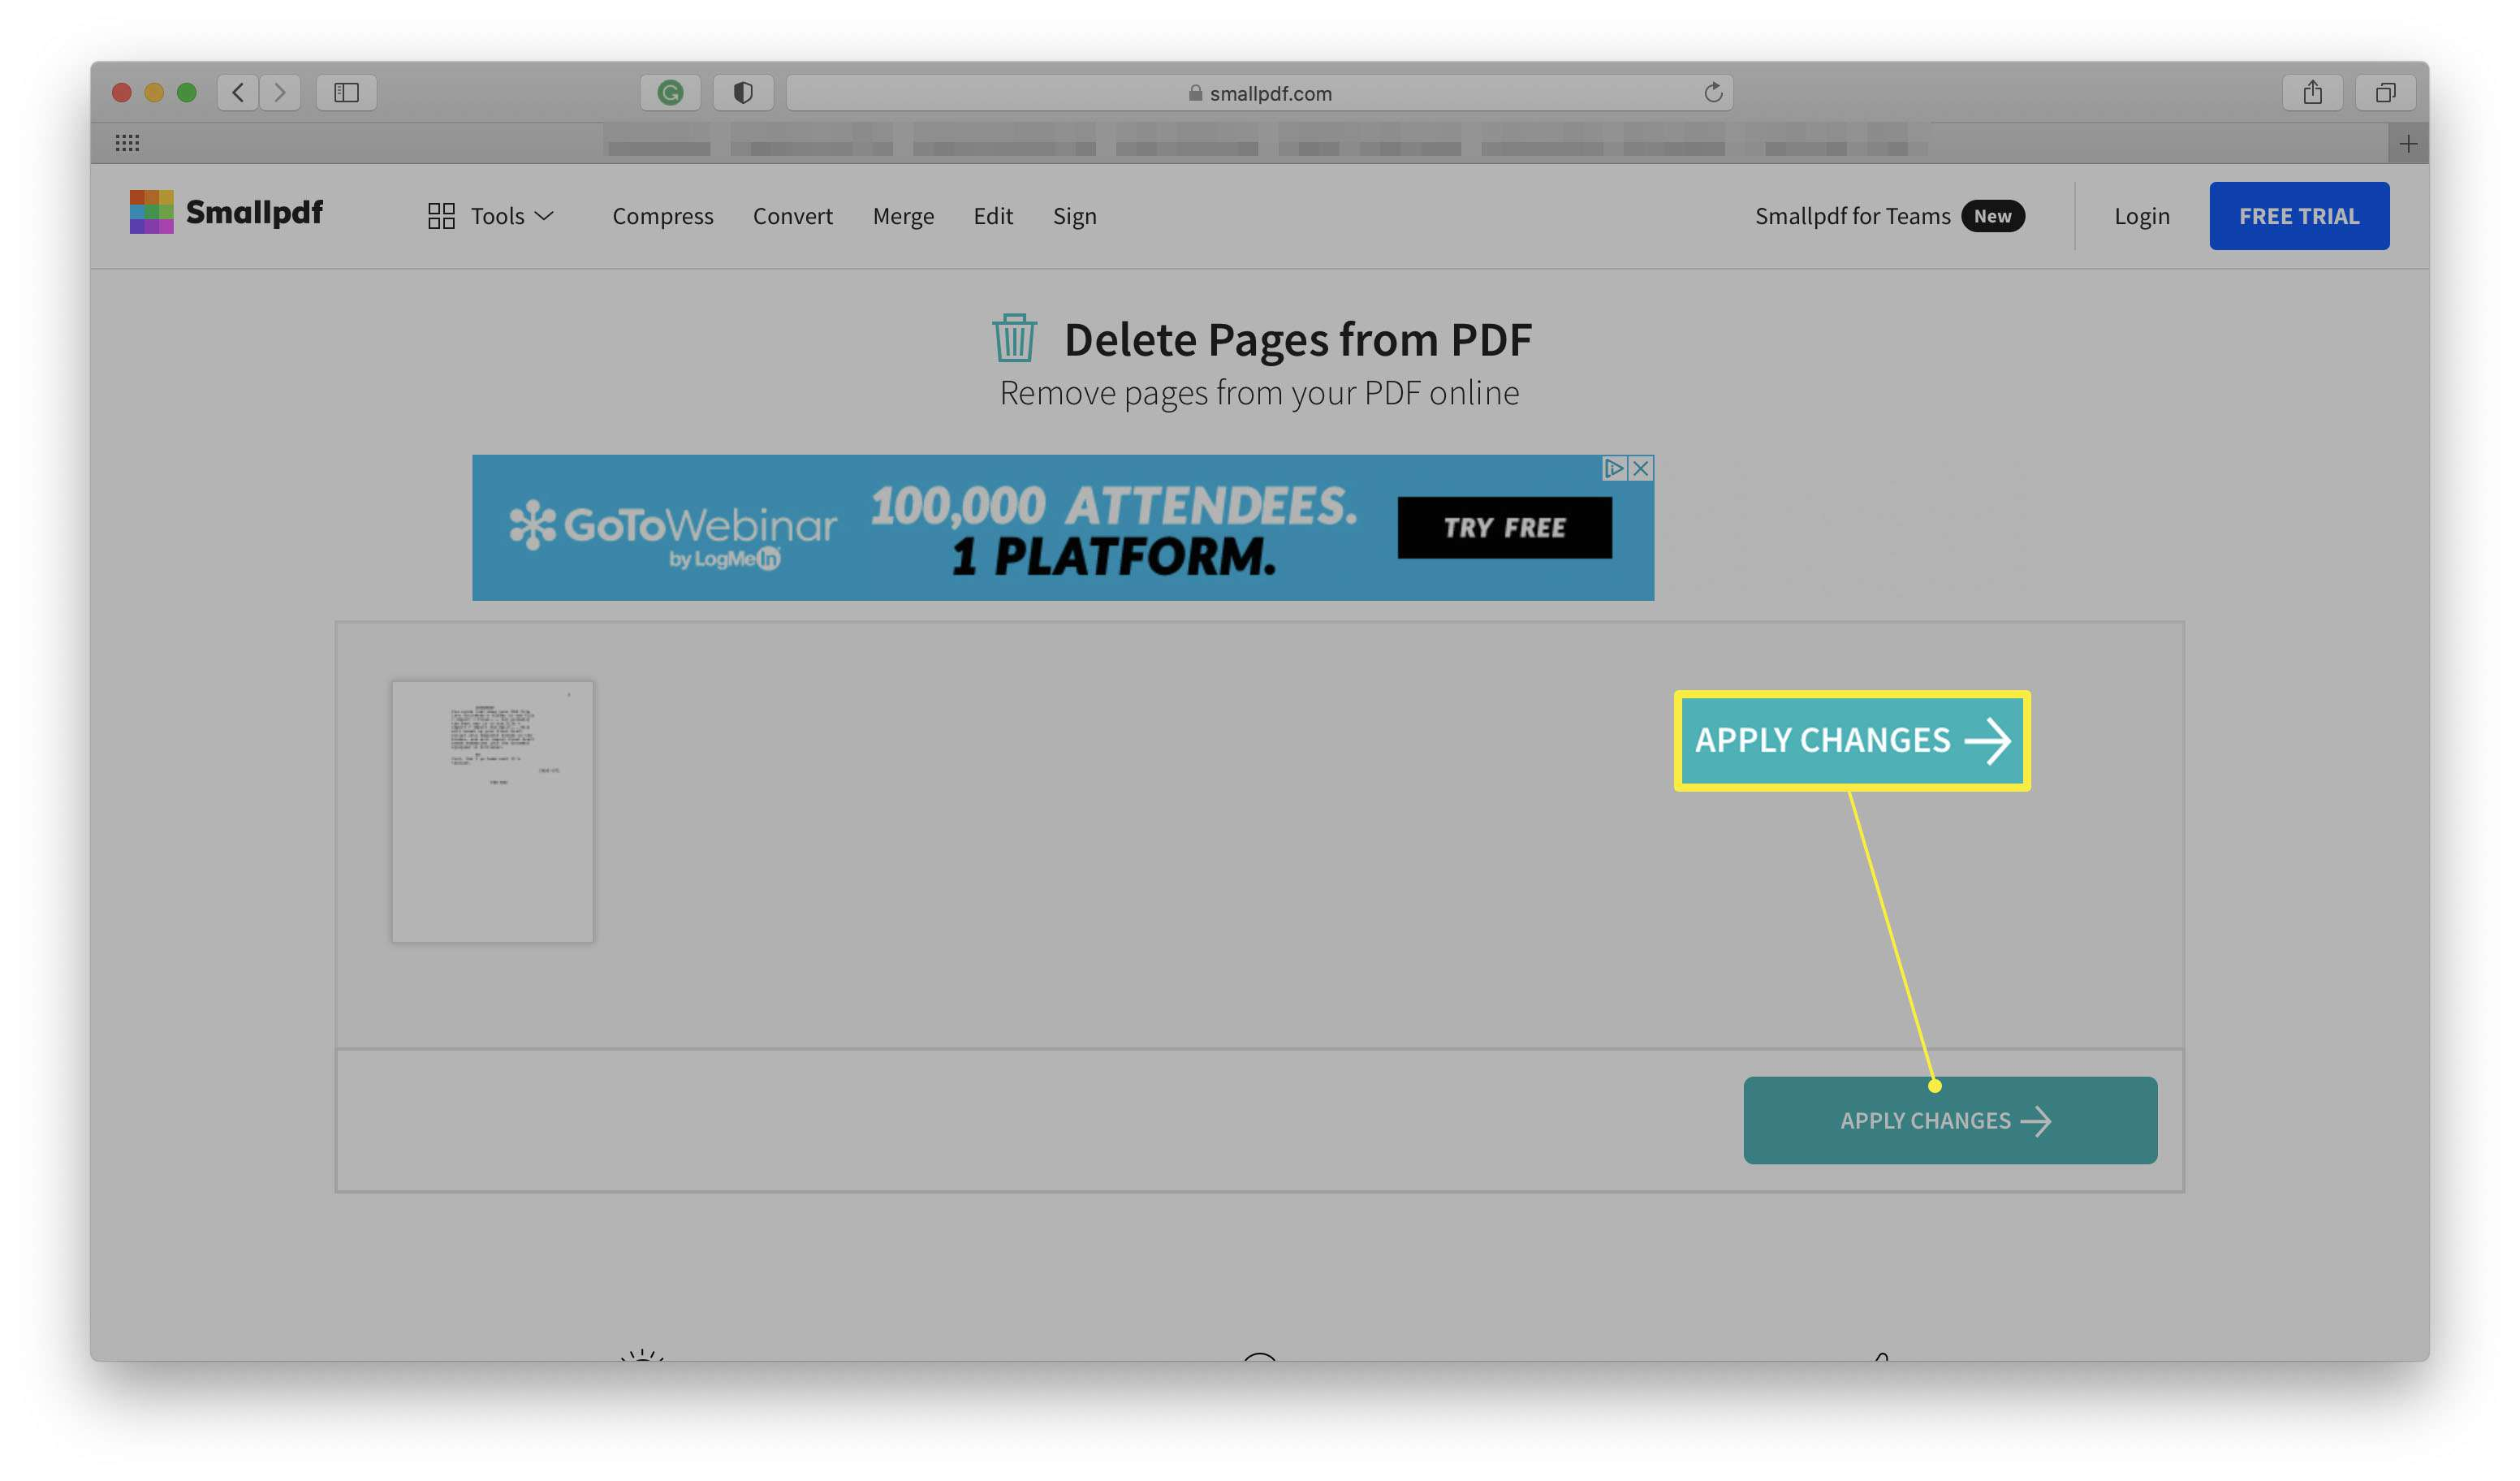 Smallpdf website with Apply Changes highlighted